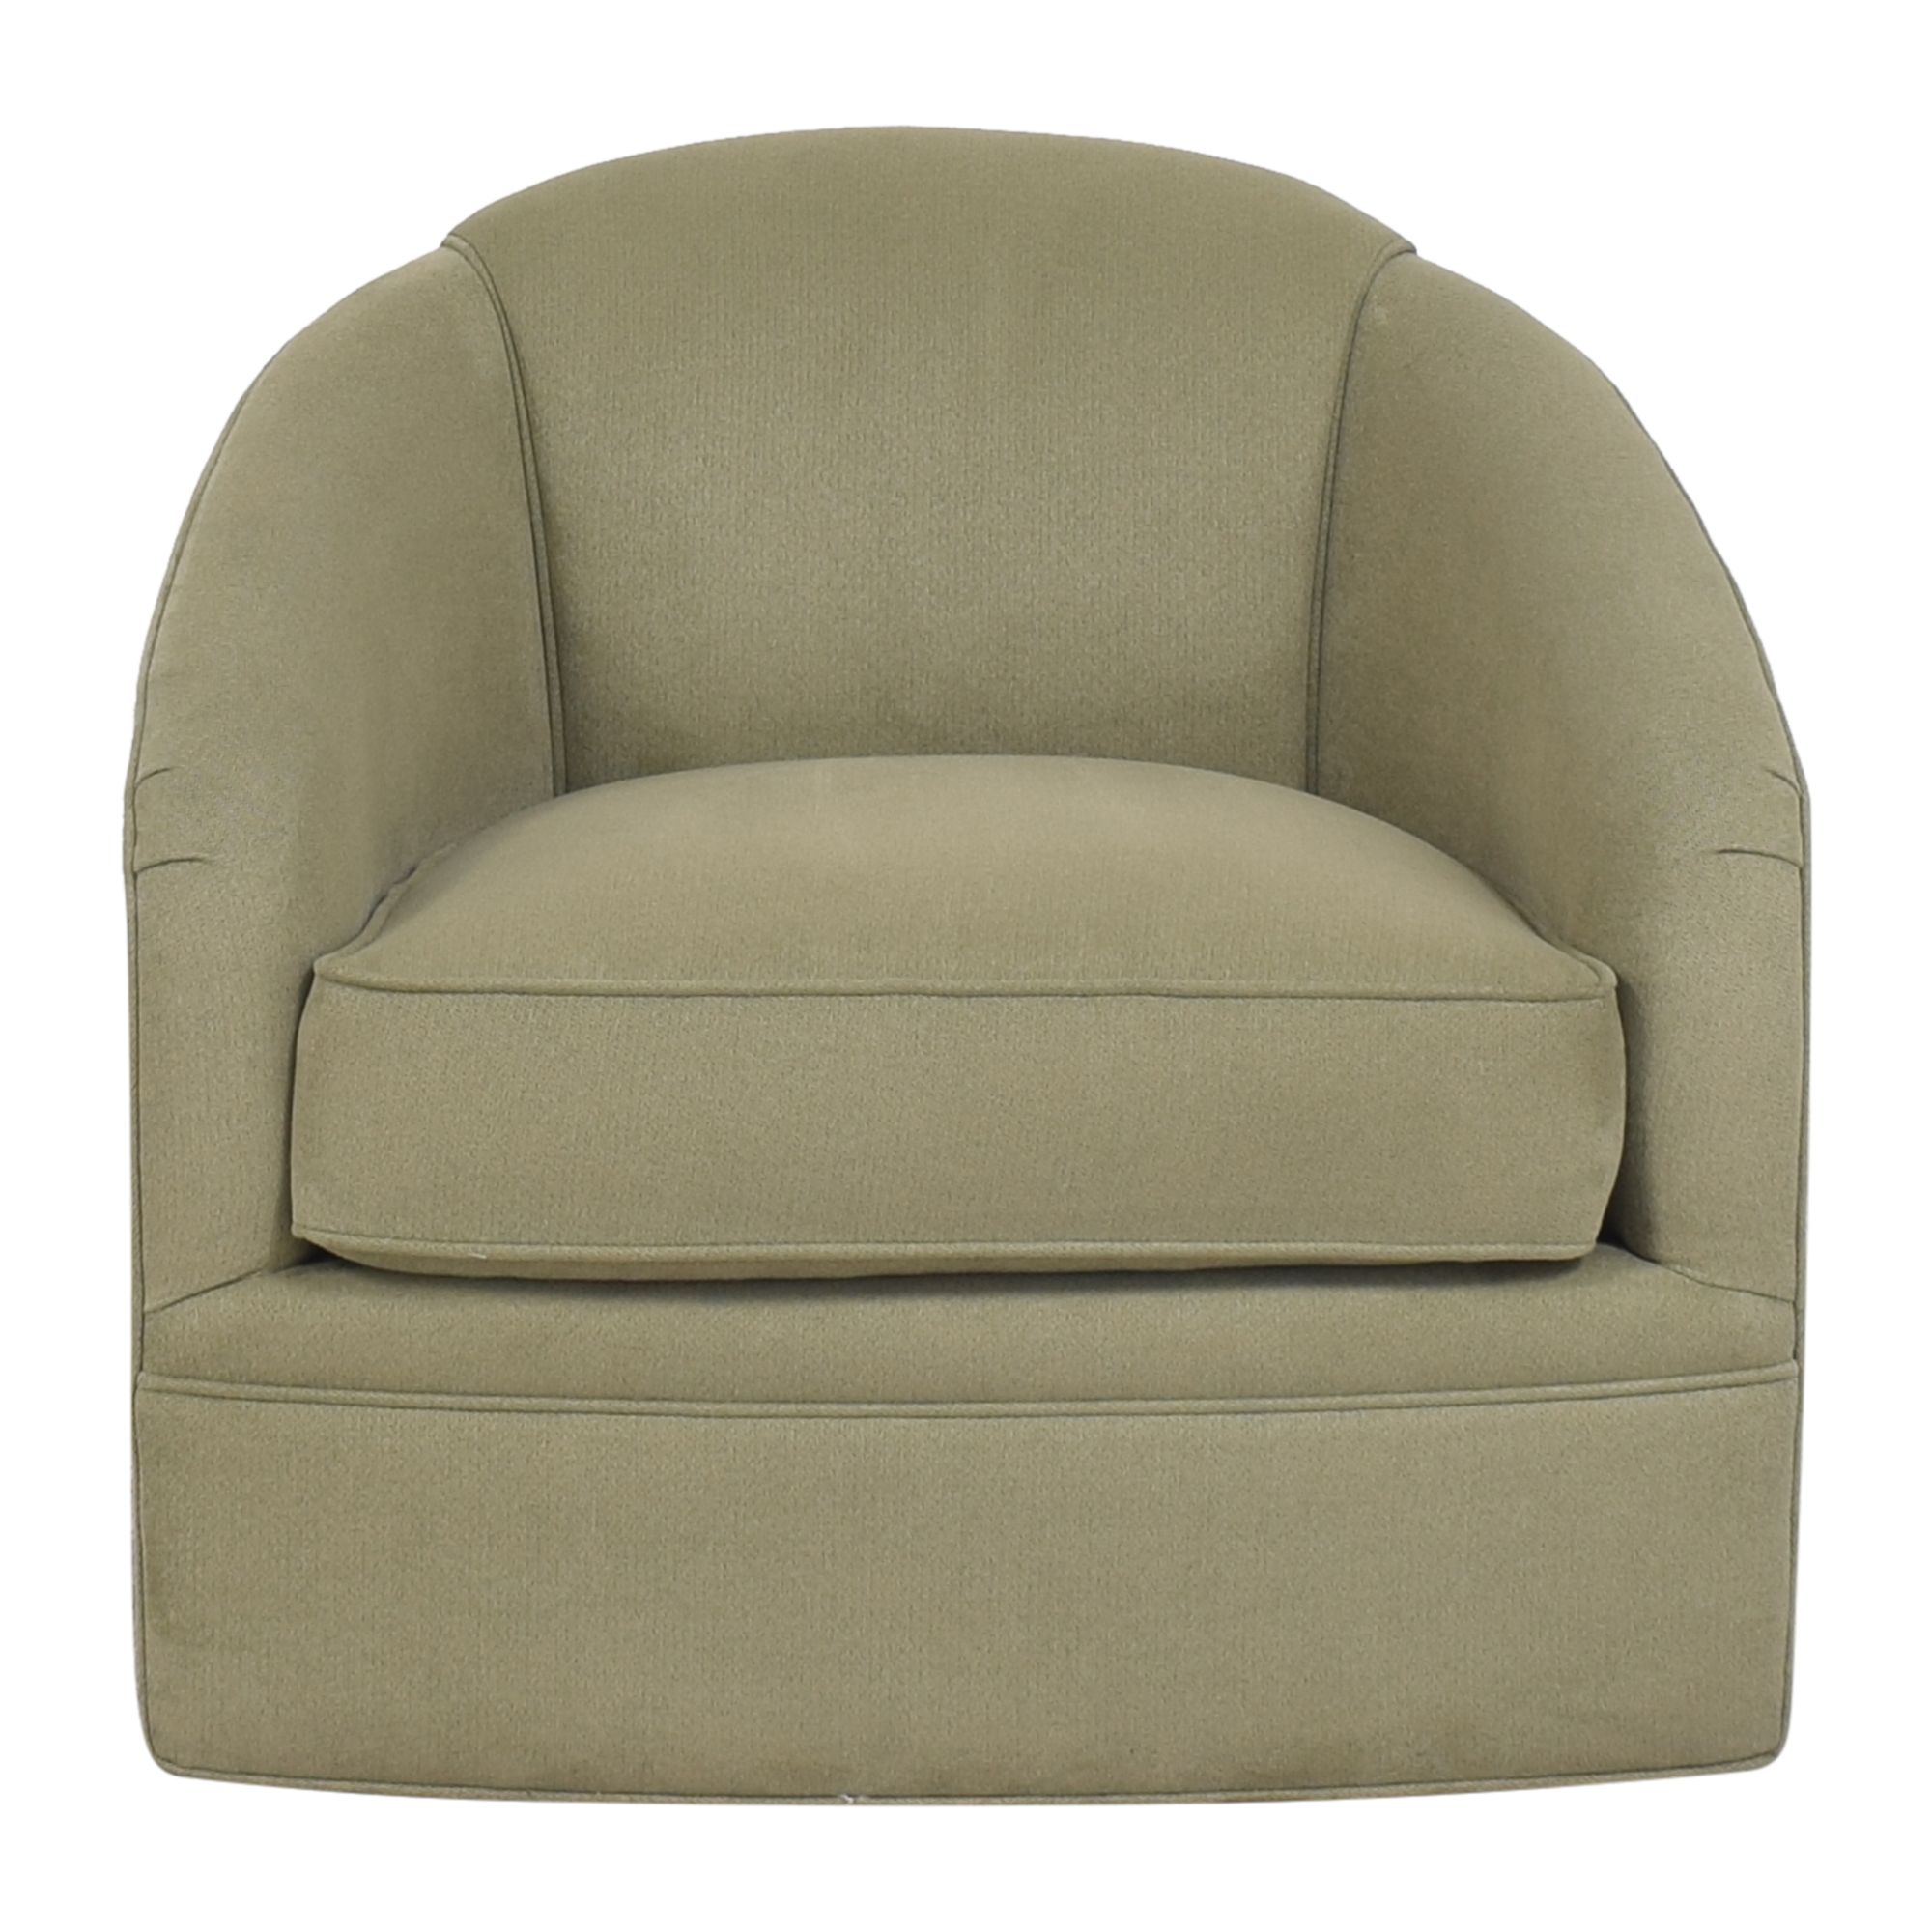 Maurice Villency Maurice Villency Cushion Tub Swivel Chair coupon